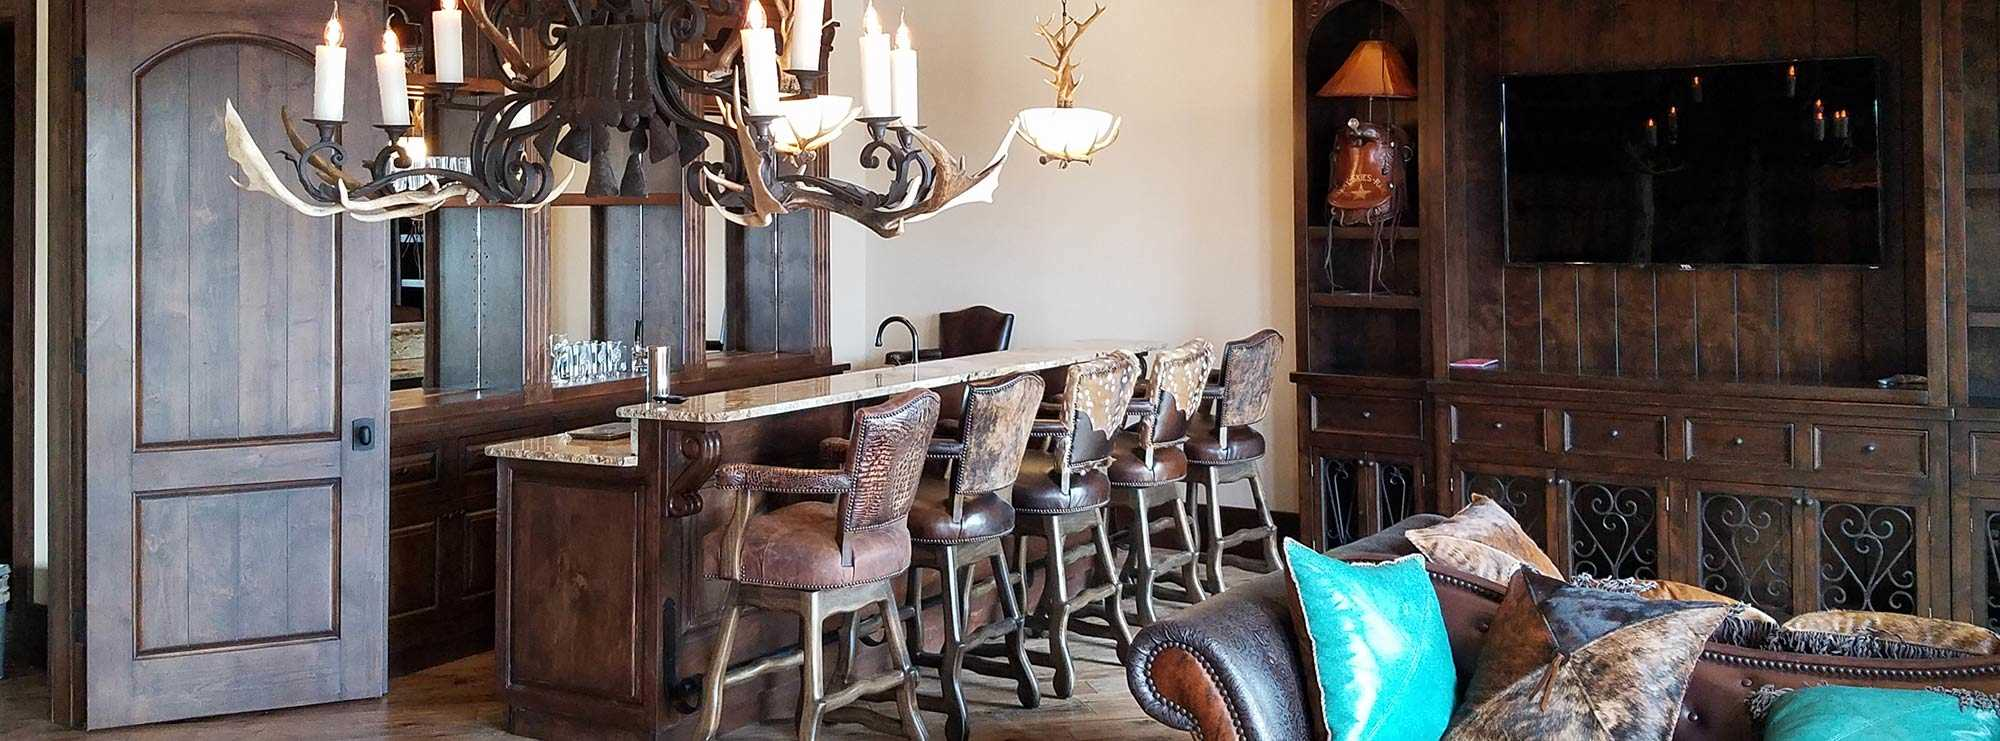 Catrina's Interiors designed and manufactured this stunning Ranch House bar area